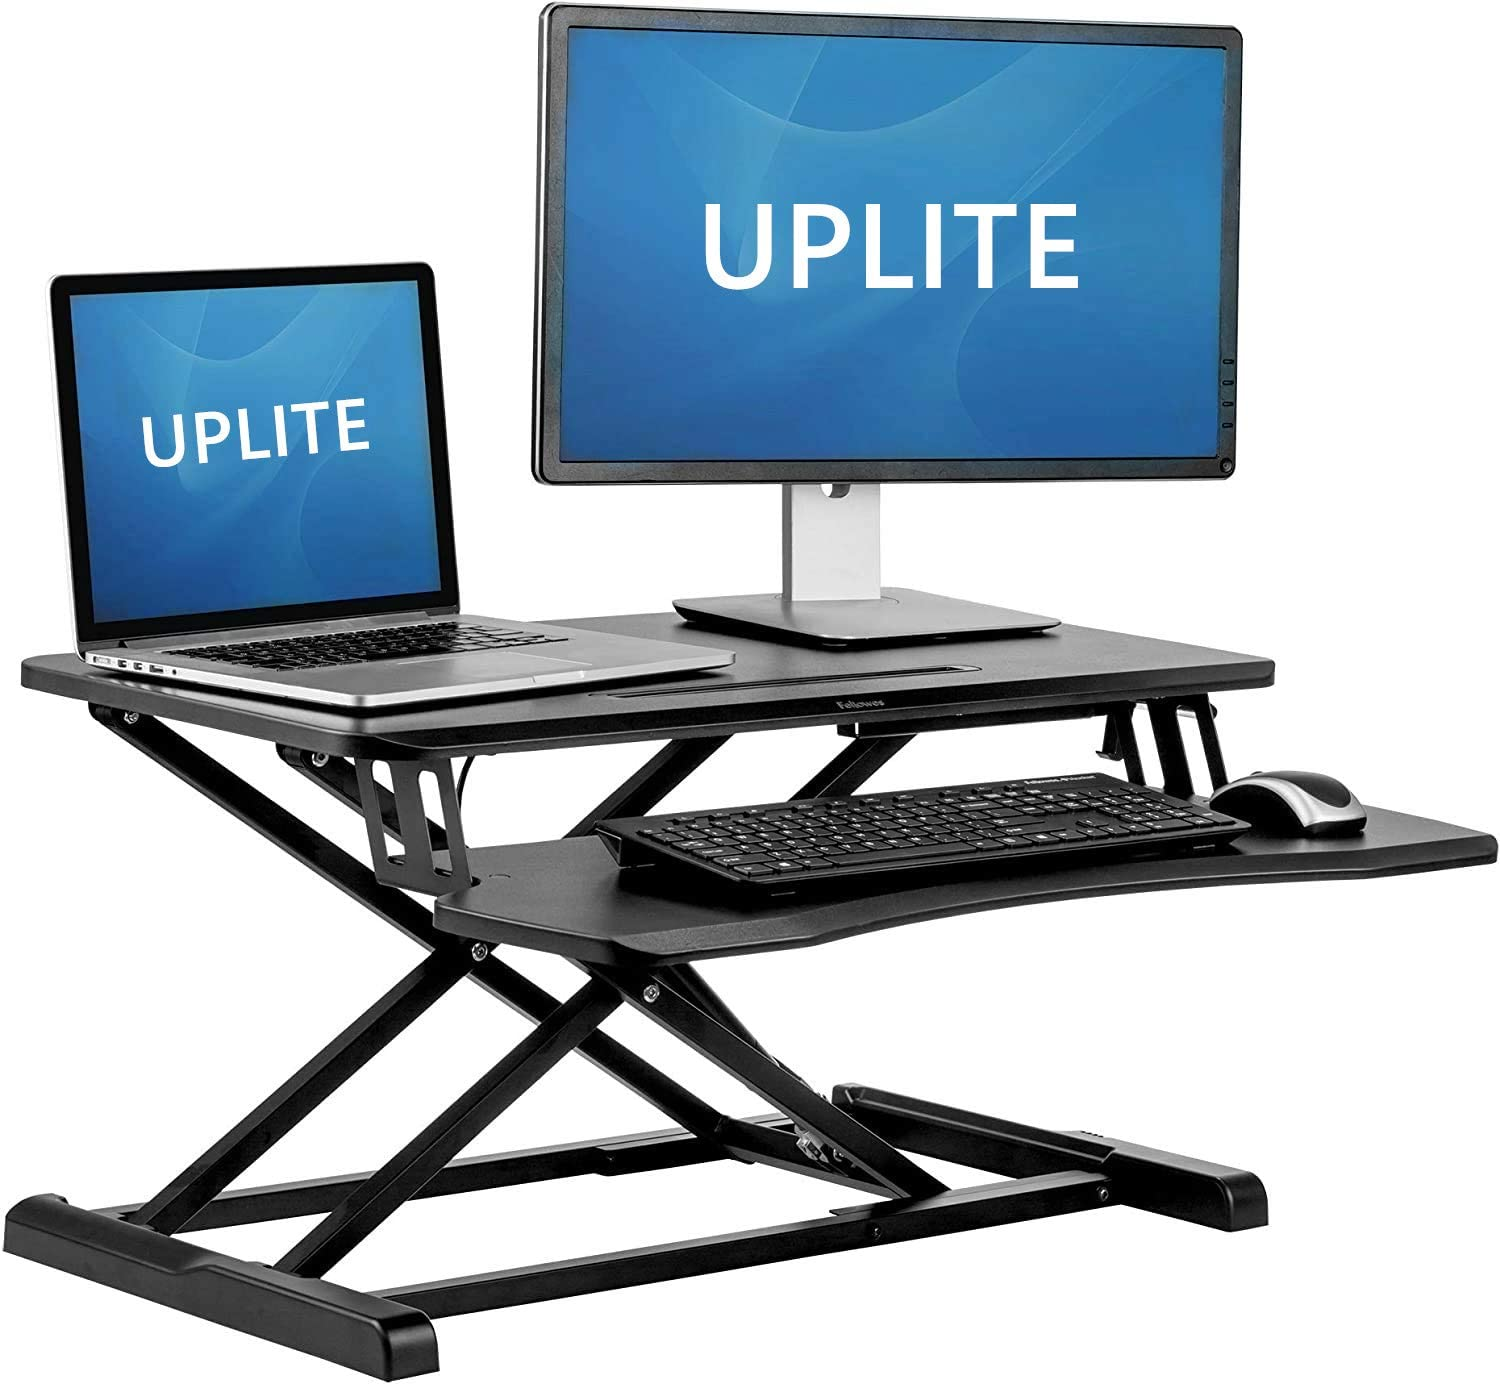 Uplite Standing Desk Converter Laptop And Monitor Sit Stand Workstation With Height Adjustable Black Amazon Ca Home Kitchen